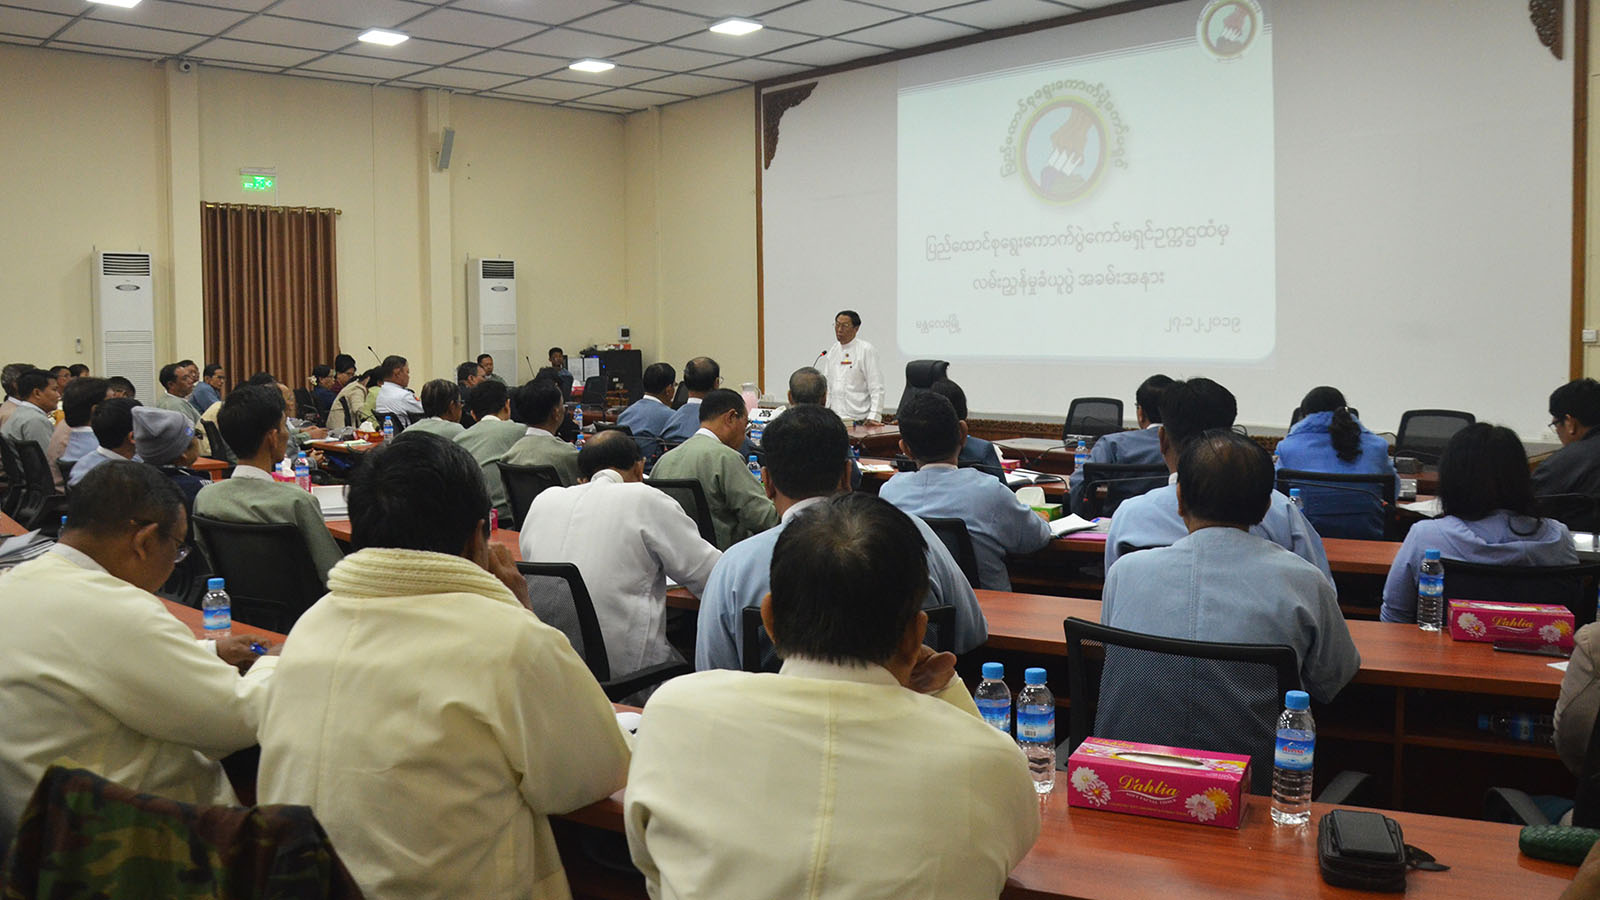 Union Election Commission Chairman U Hla Thein delivers the speech at the meeting with officials from election sub-commissions of Mandalay Region in Mandalay yesterday.Photo: MNA